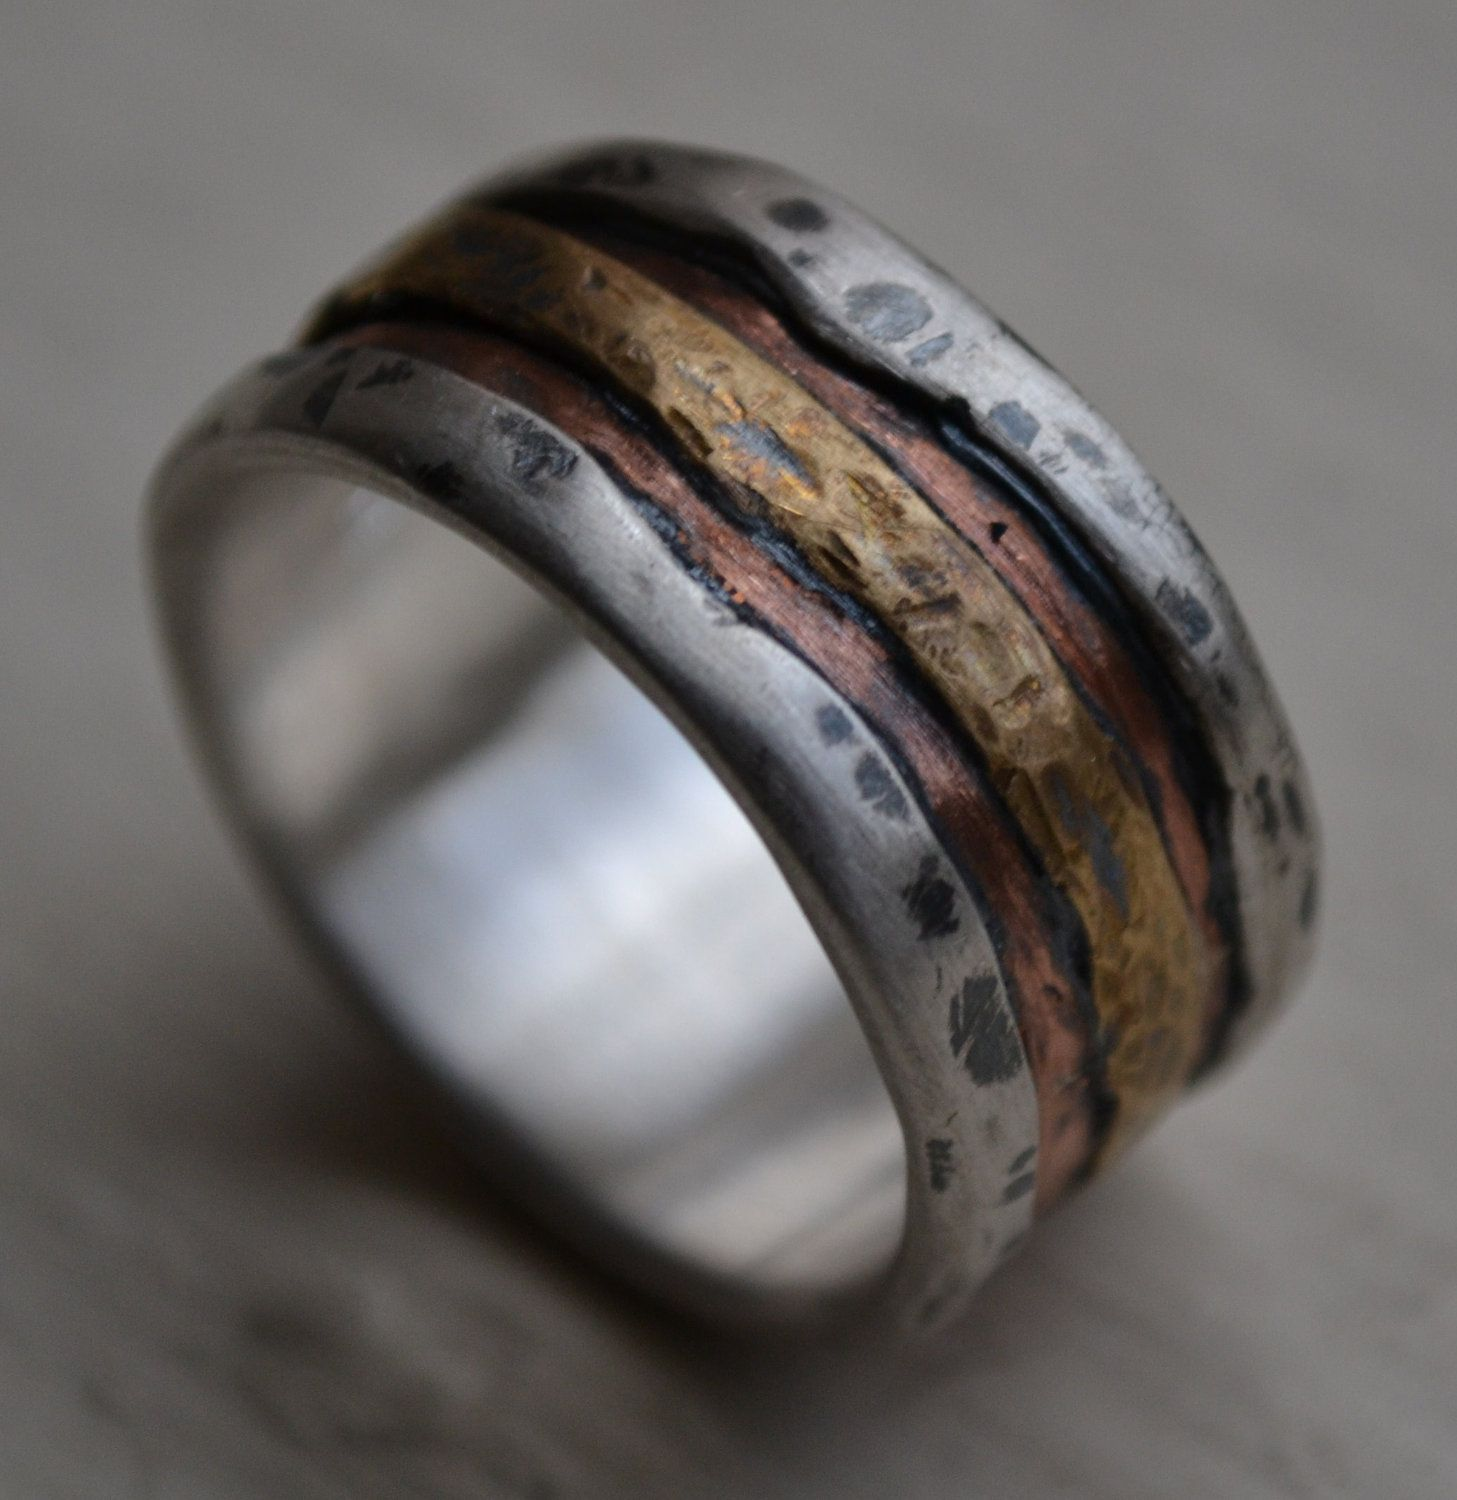 Mens Wedding Band Rustic Fine Silver Copper And Br Handmade Designed Wide Ring Manly Customized 285 00 Via Etsy